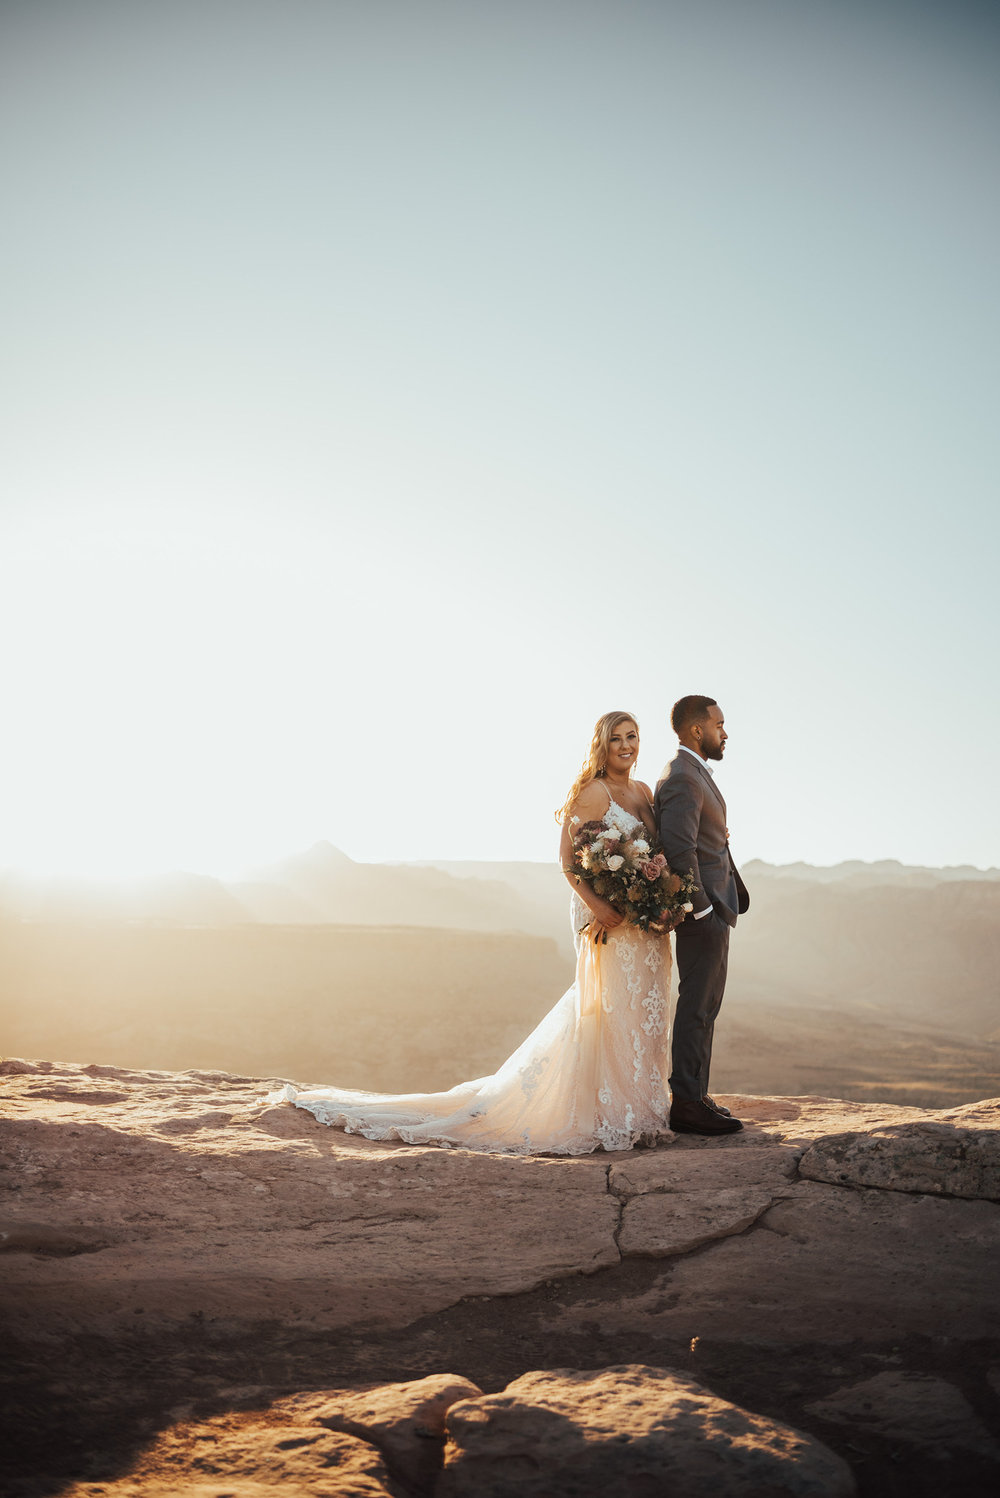 savannah-bridal-shop-ivory-and-beau-maggie-sottero-bride-tuscany-lynette-zion-national-park-wedding-utah-wedding-savannah-wedding-dresses-savannah-wedding-gowns-ashley-smith-photography-vanilla-and-the-bean-7.JPG